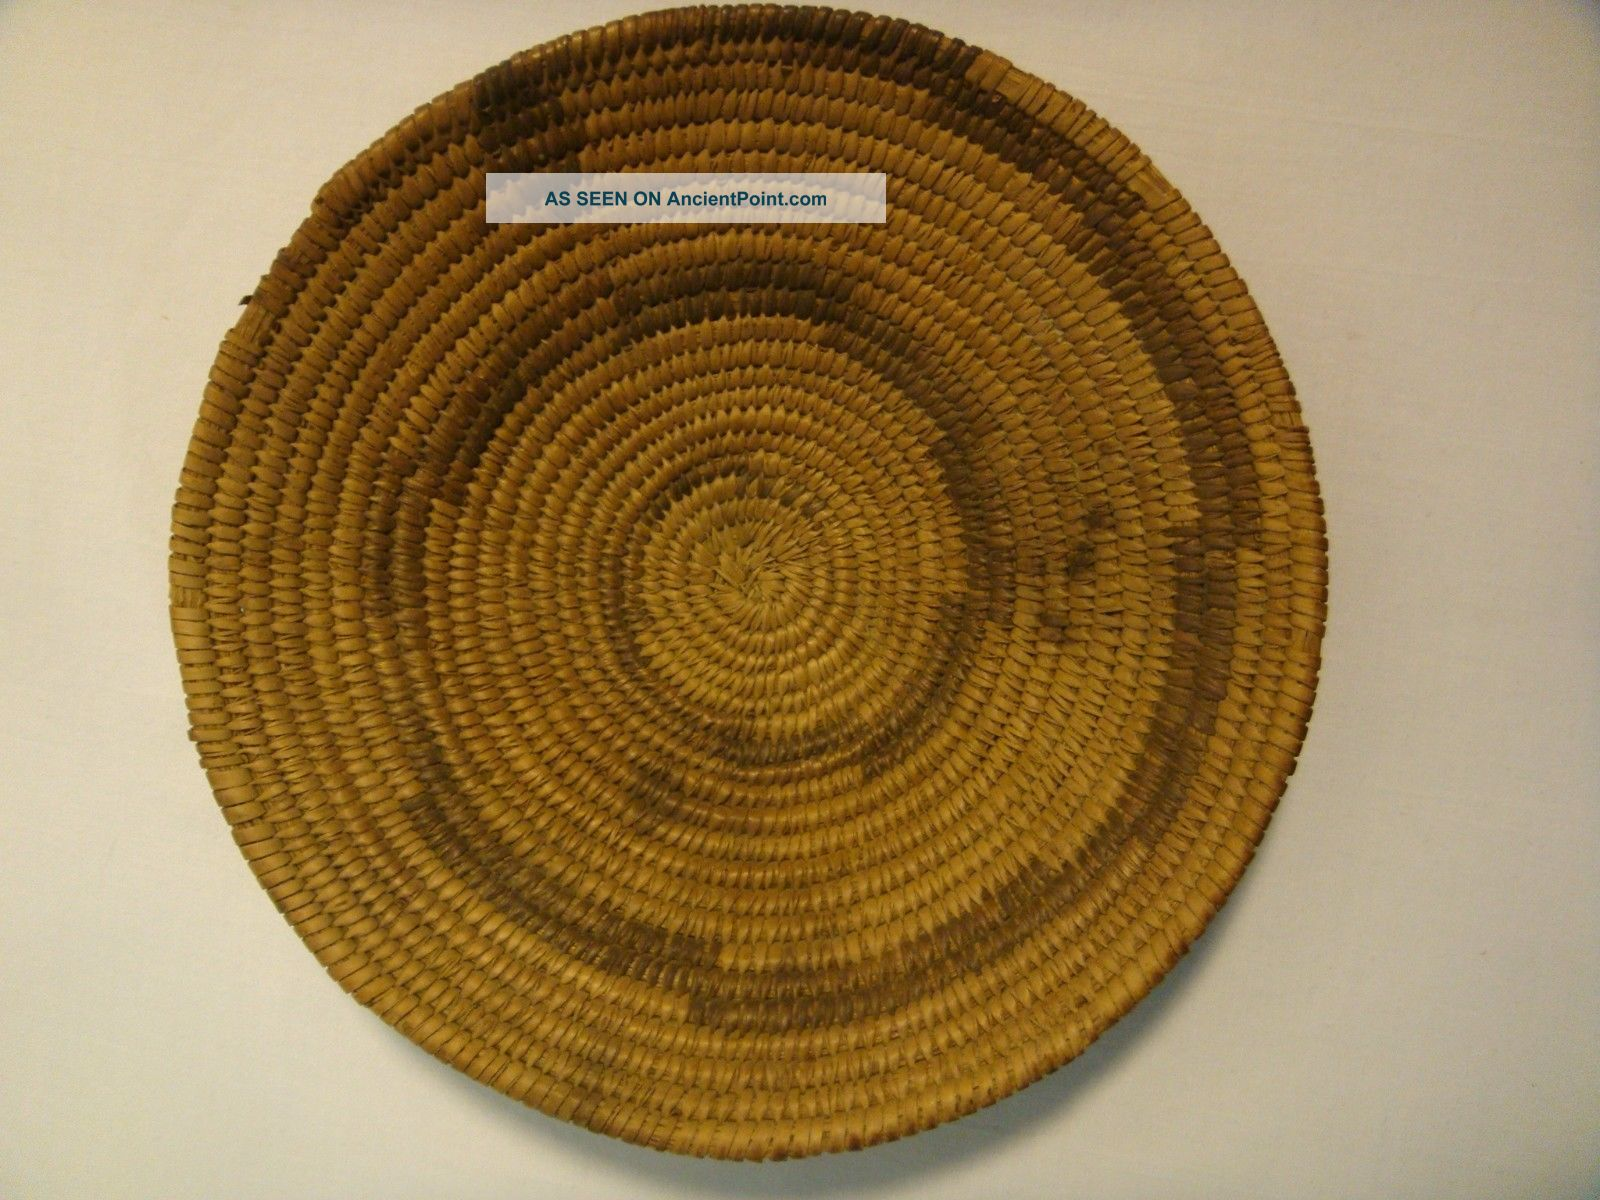 Antique Native American Pima Indian Basket Tray Hand Woven Small Low Willow Bowl Native American photo